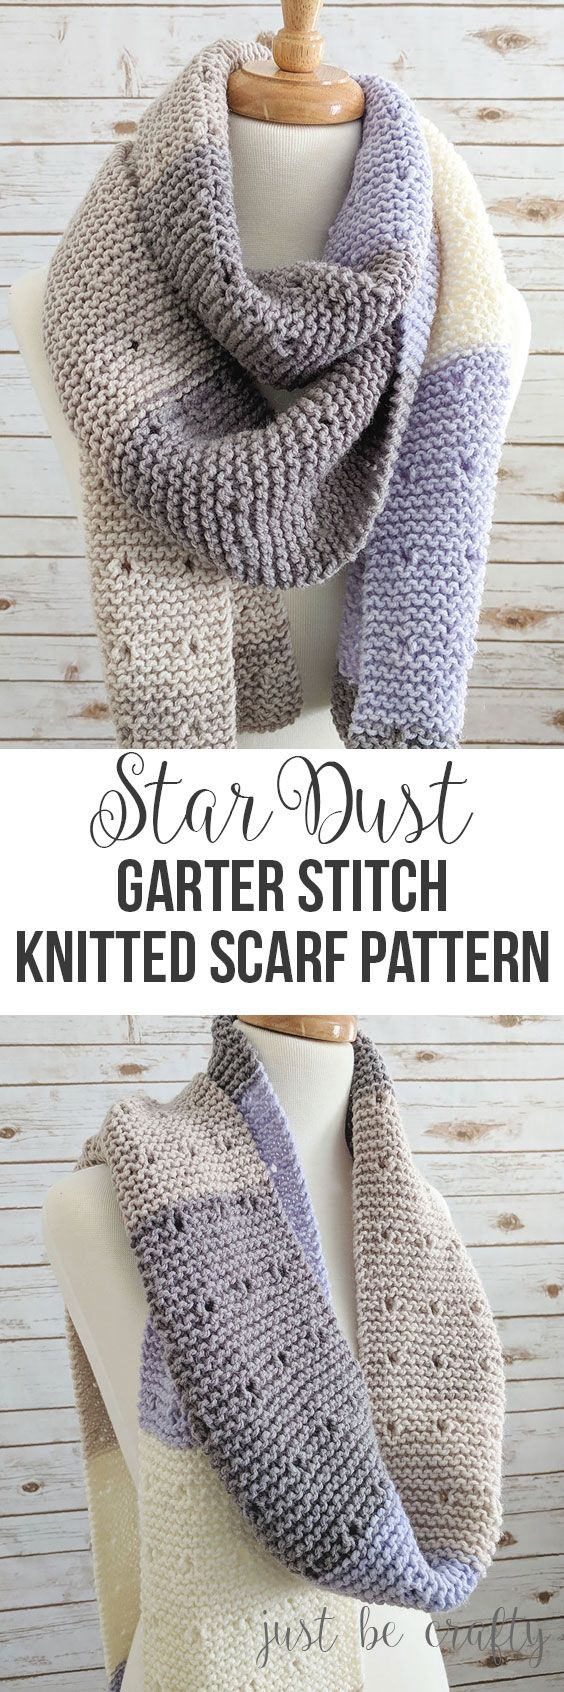 Star Dust Knitted Garter Stitch Scarf Pattern | Knit | Pinterest ...